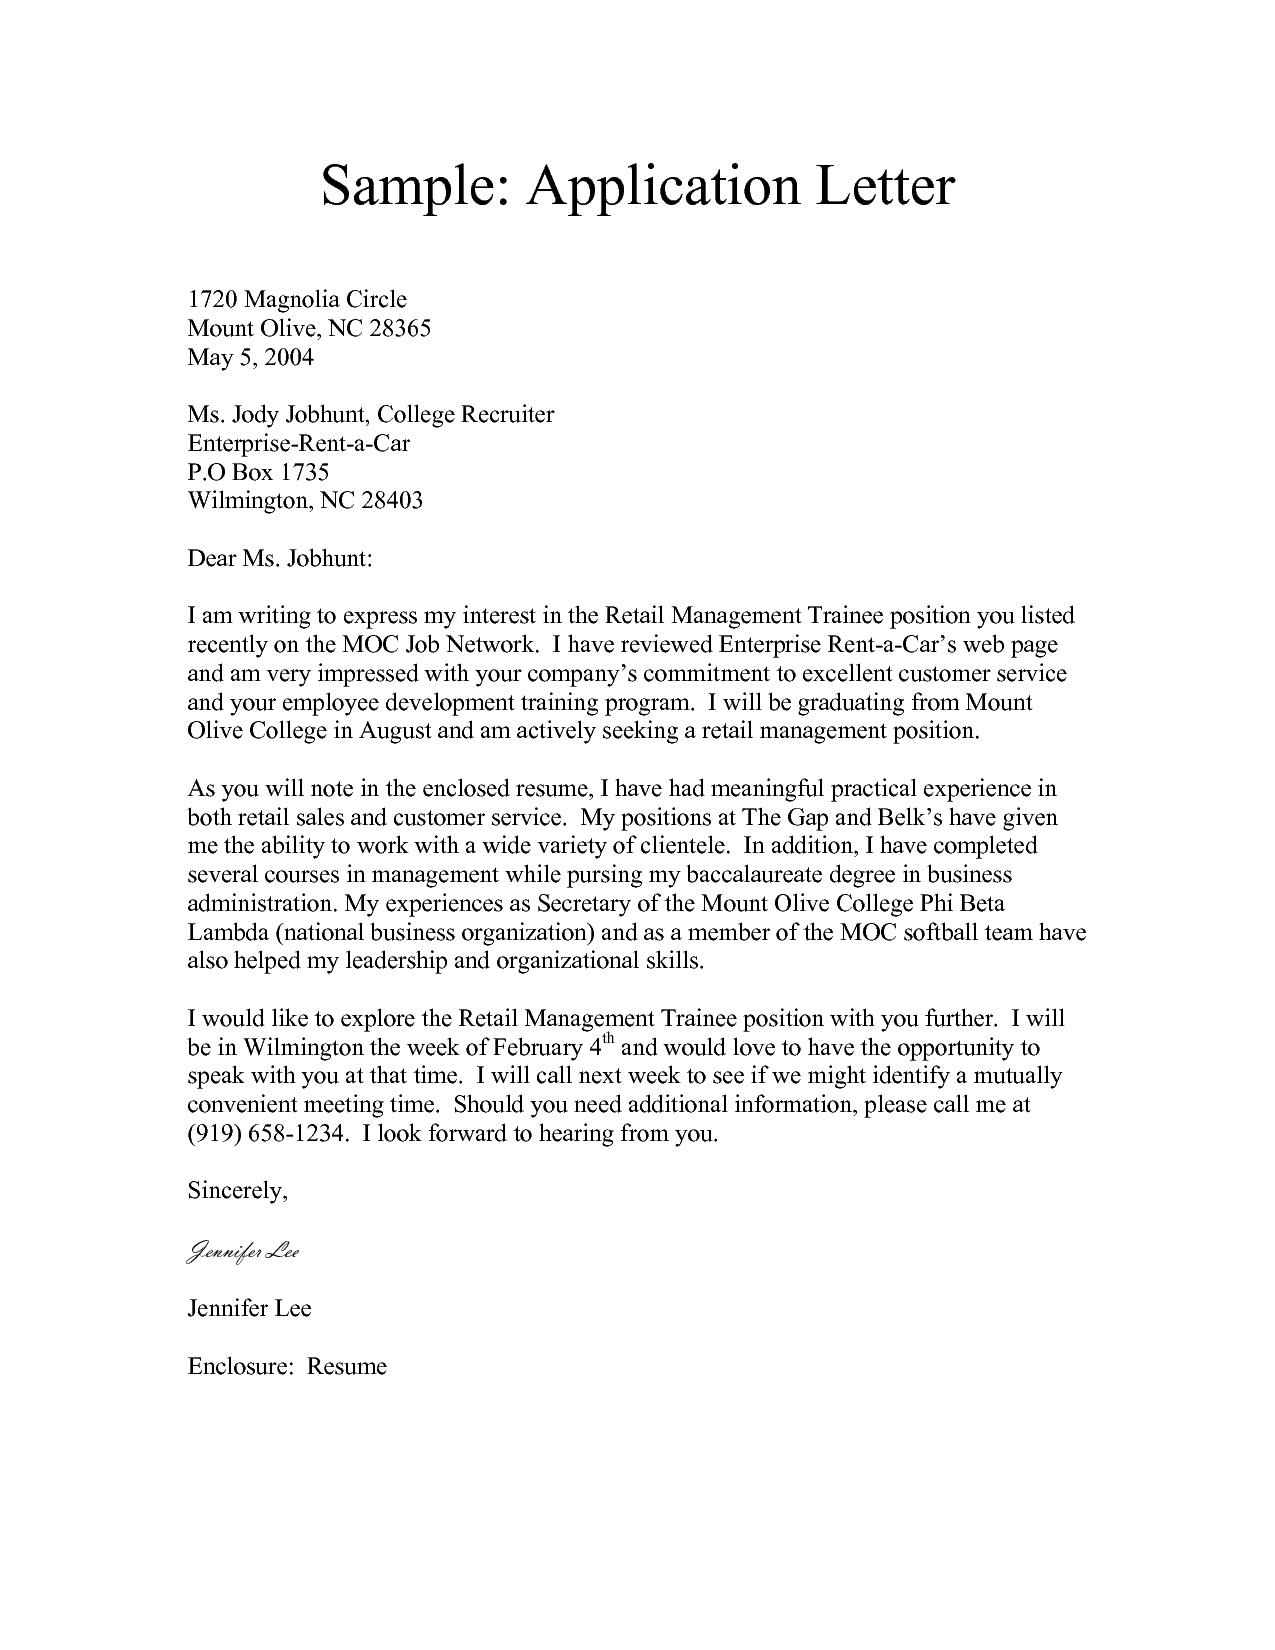 7 Application Letter Samples